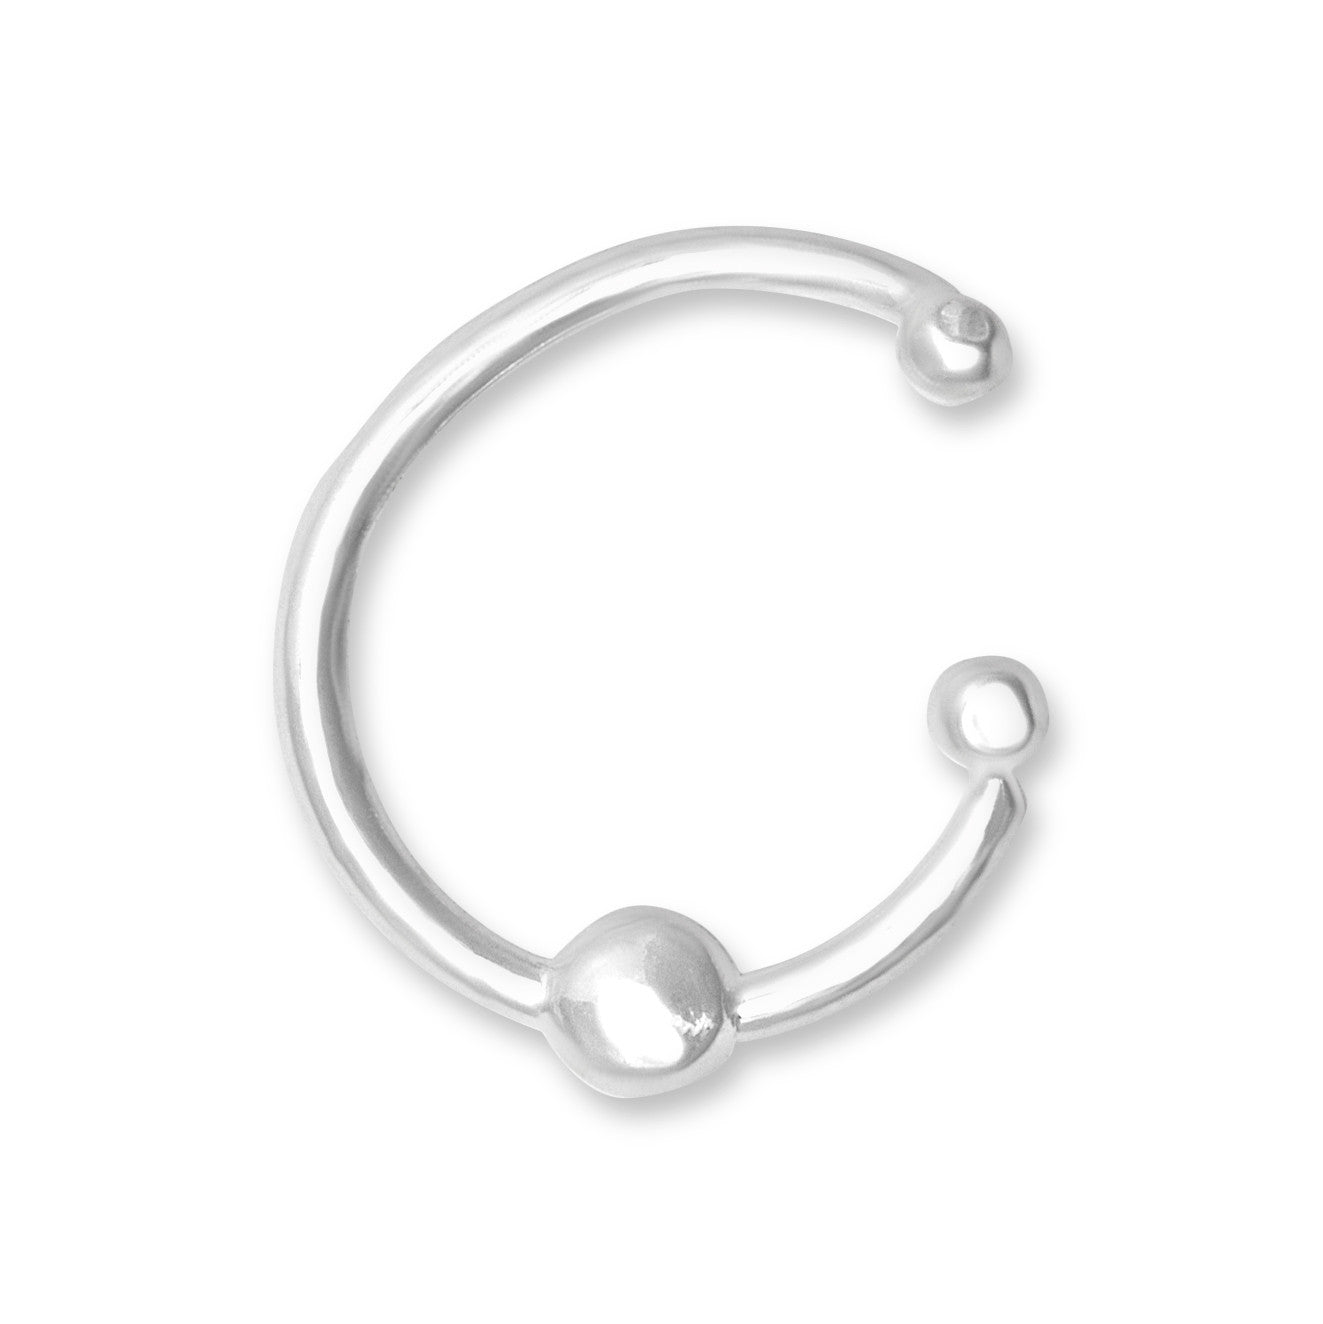 EC-1200 Ball Bead Ear Cuff | Teeda